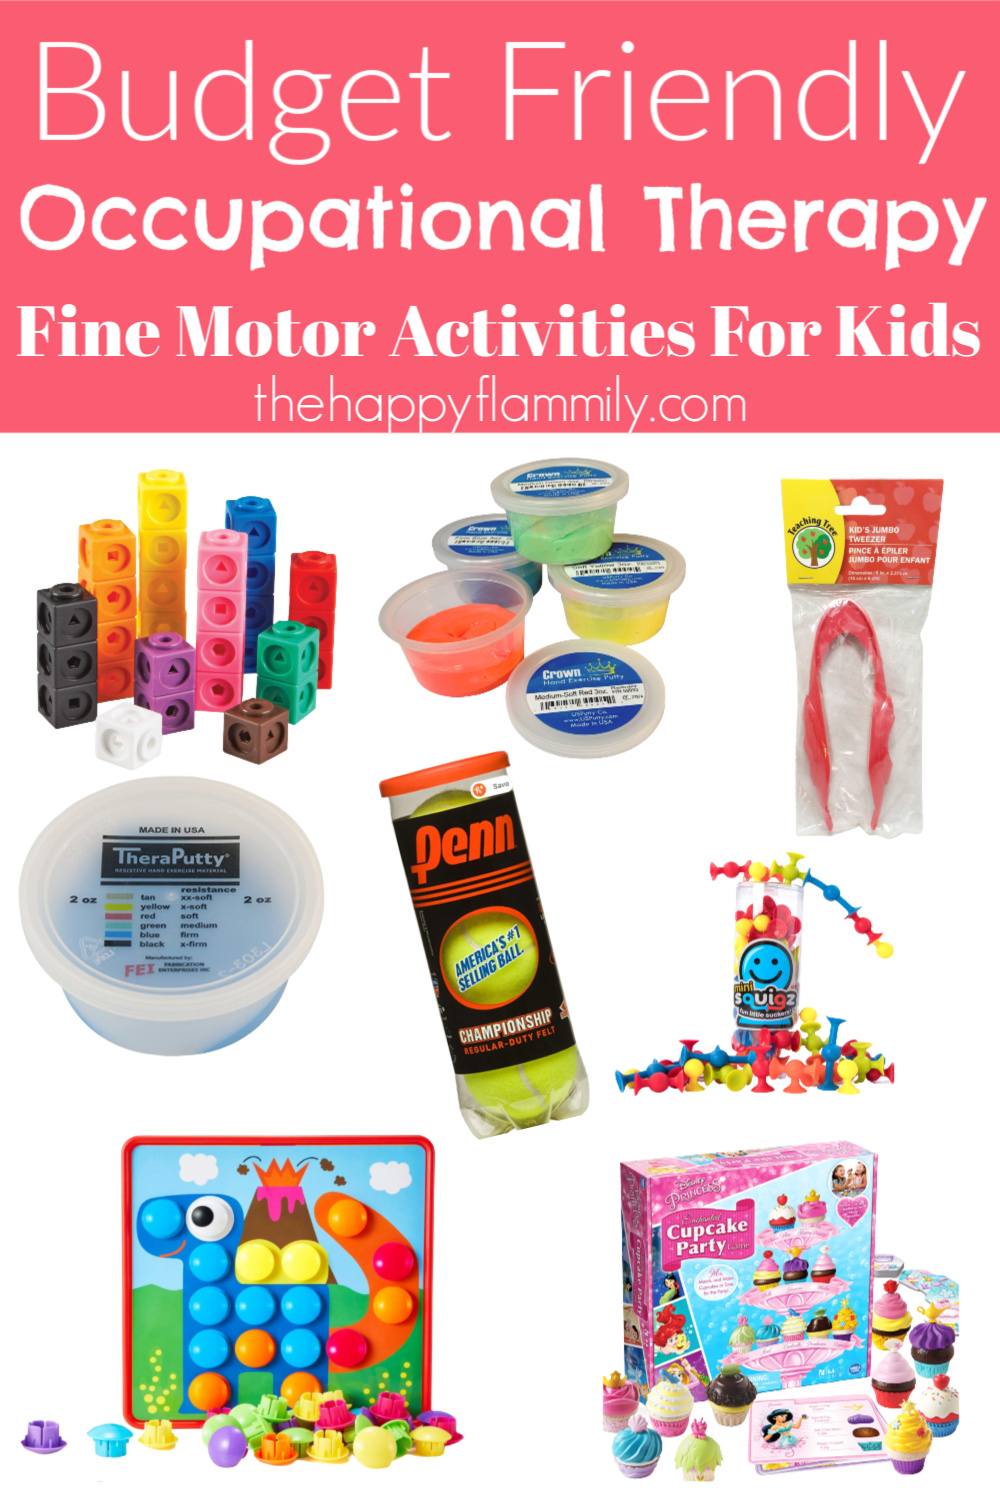 Fine Motor strengthening activities. Fine motor skills activities for 5-6 year olds. Fine motor activities for 8 year olds. Fine Moto activities occupational therapy. OT activities for toddlers. OT toolbox. Fine motor activities with household items. OT ideas for kids. Fun fine motor ideas for kids. Cheap and inexpensive fine motor activities for kids. Ideas for at home occupational therapy. #ot #occupationaltherapy #finemotor #crafts #kids #fun #therapy #pt #physicaltherapy